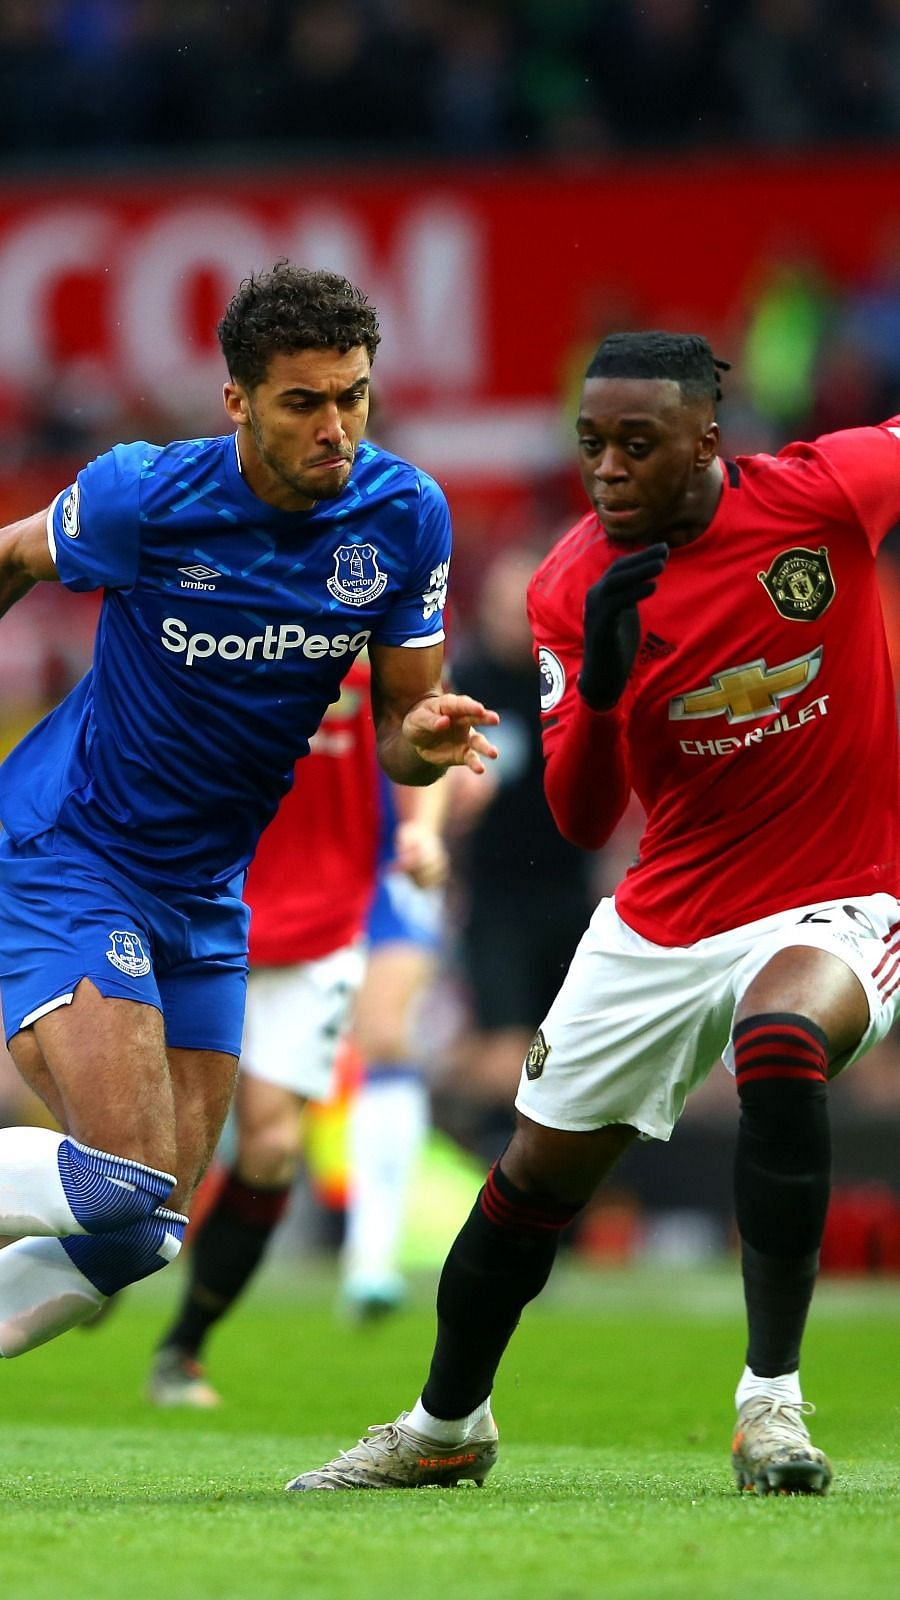 Everton Vs Manchester United Prediction And Betting Tips 1st March 2020